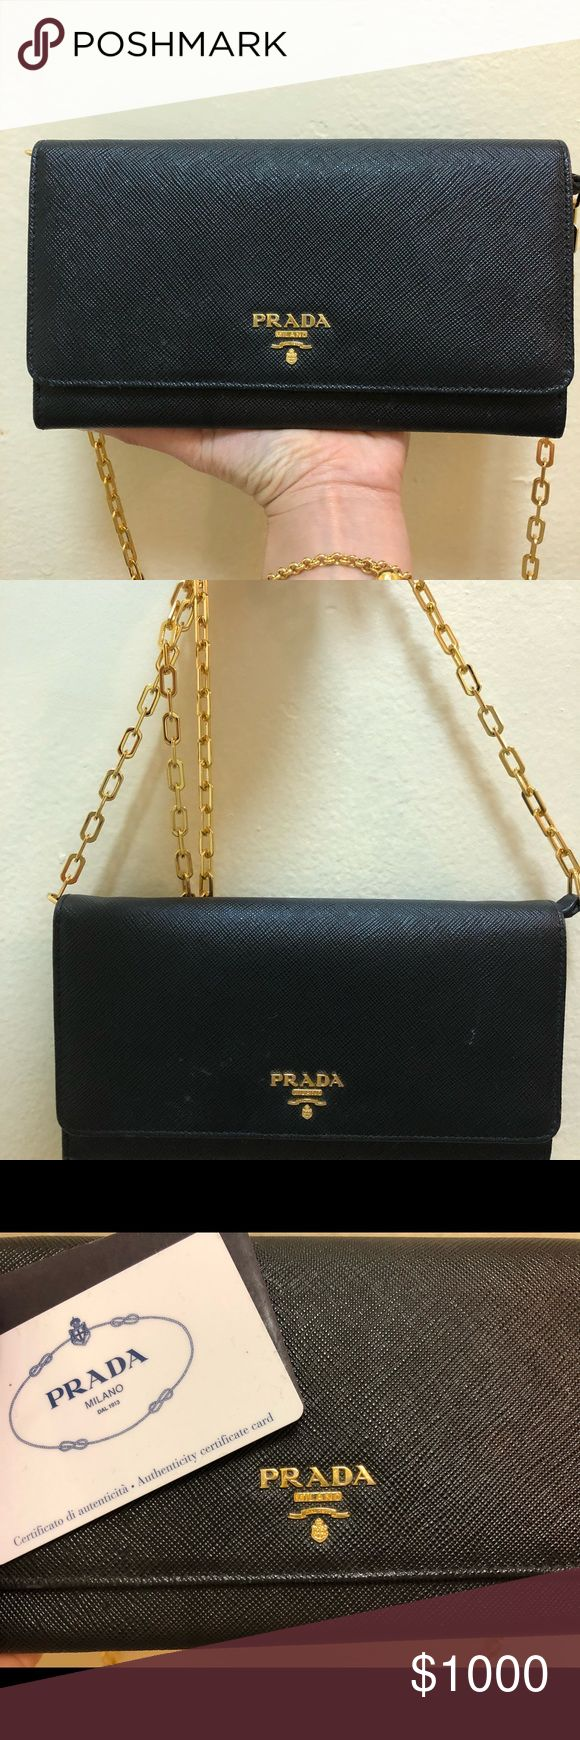 ✨Prada✨ Wallet with chain Good condition wallet with gold chain  100% authentic with card  Comes with Box and bag Prada Bags Wallets